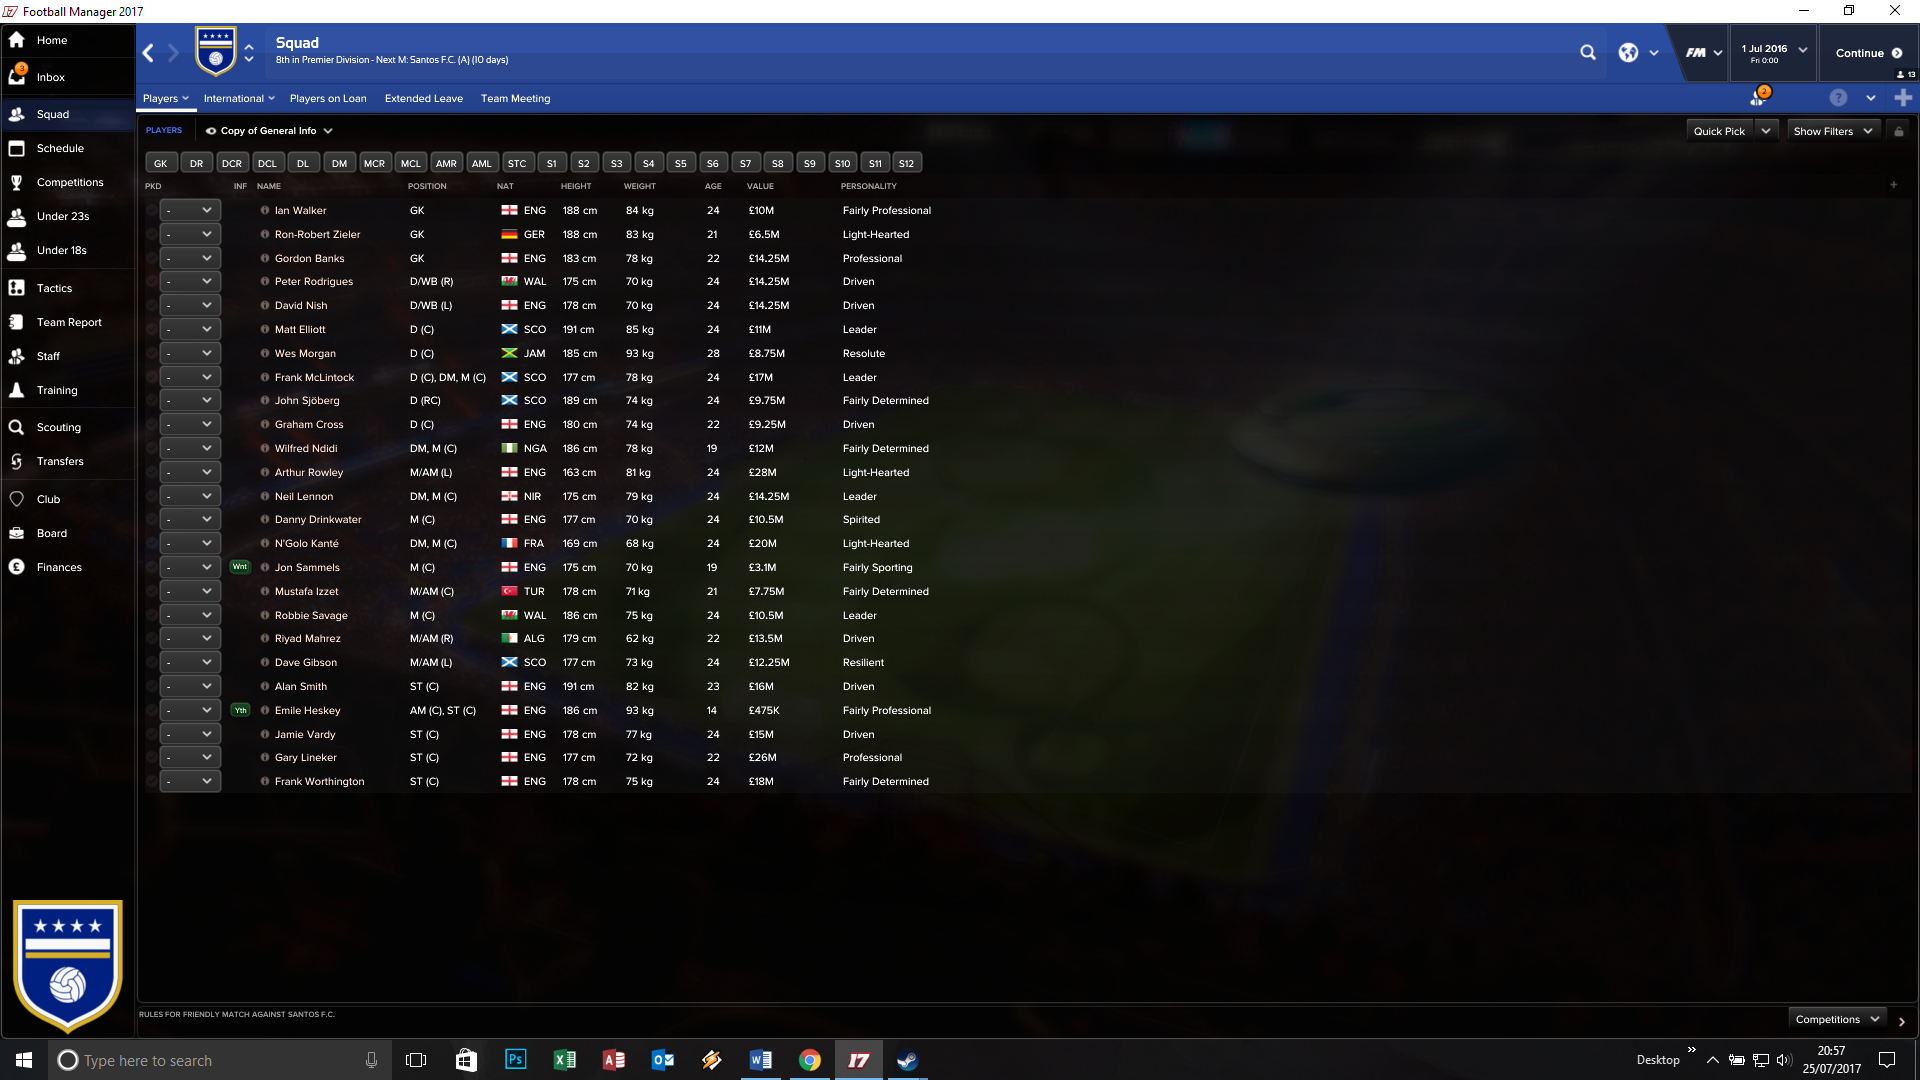 Leicester_Squad.png